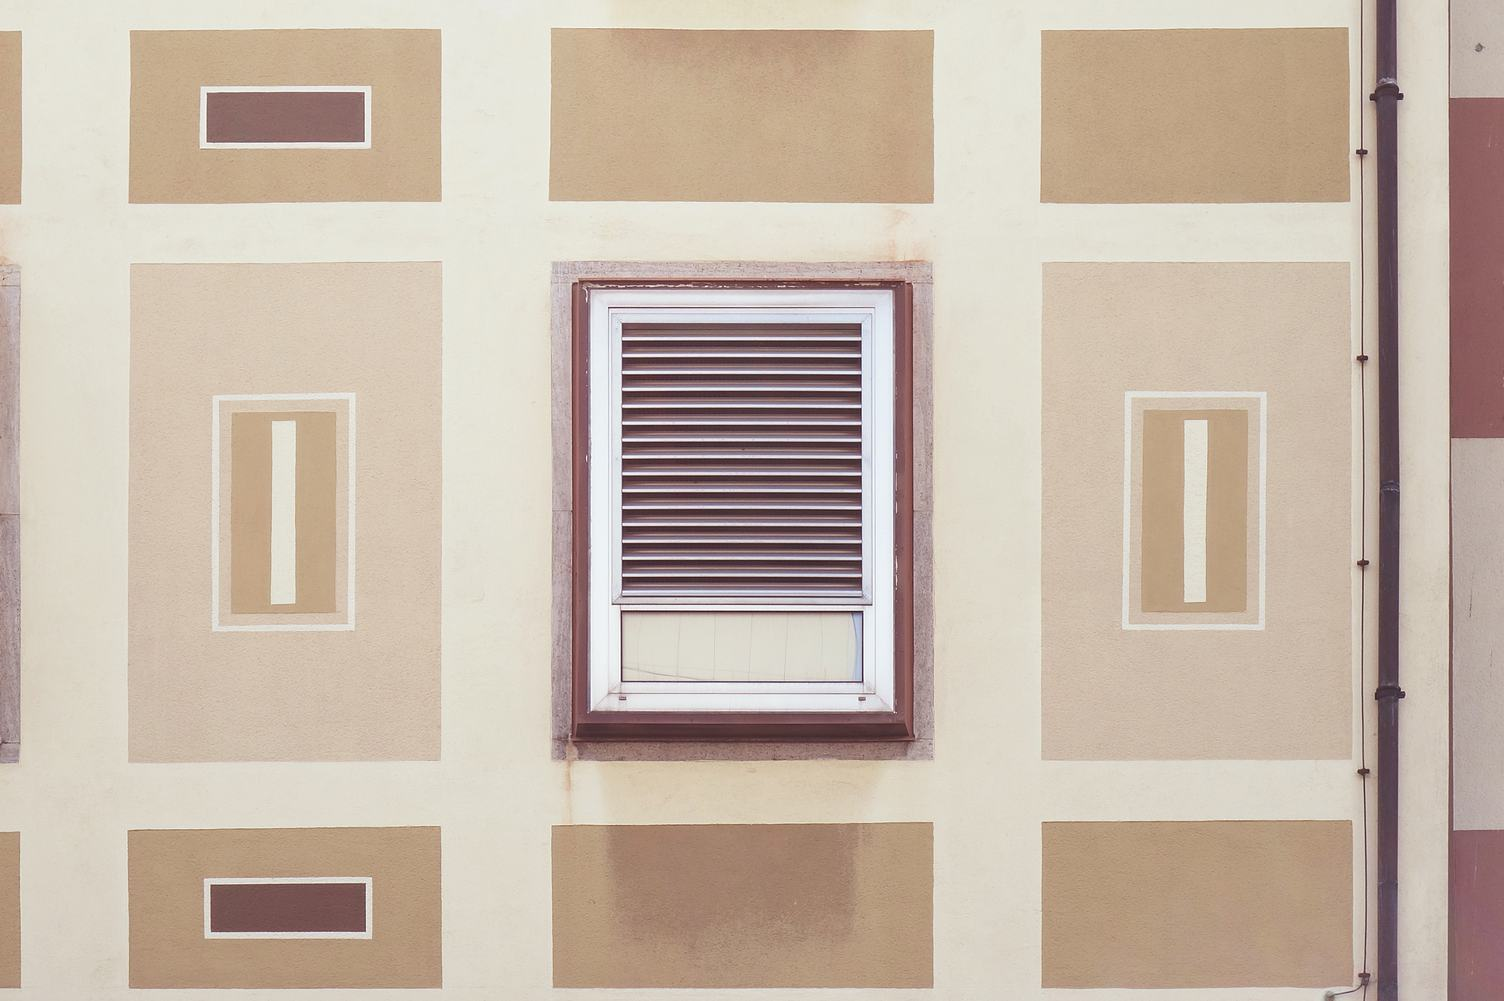 Pastel Rectangles and Window - Building Facade